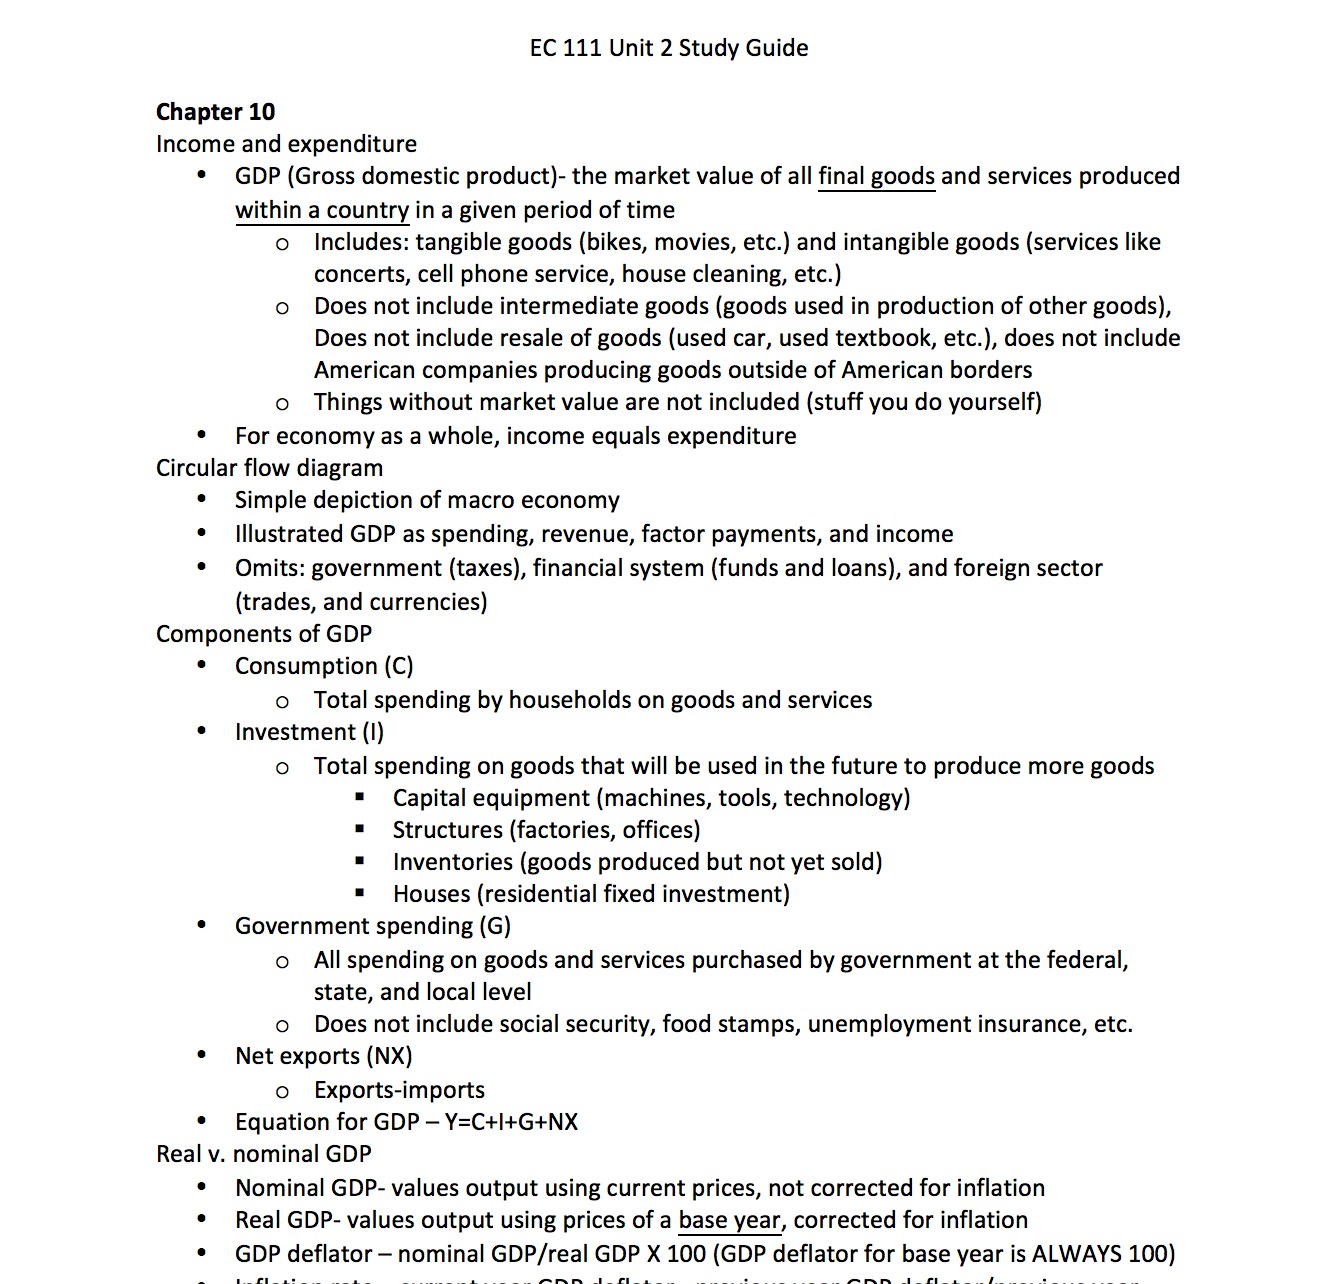 STAT 111 - Study Guide